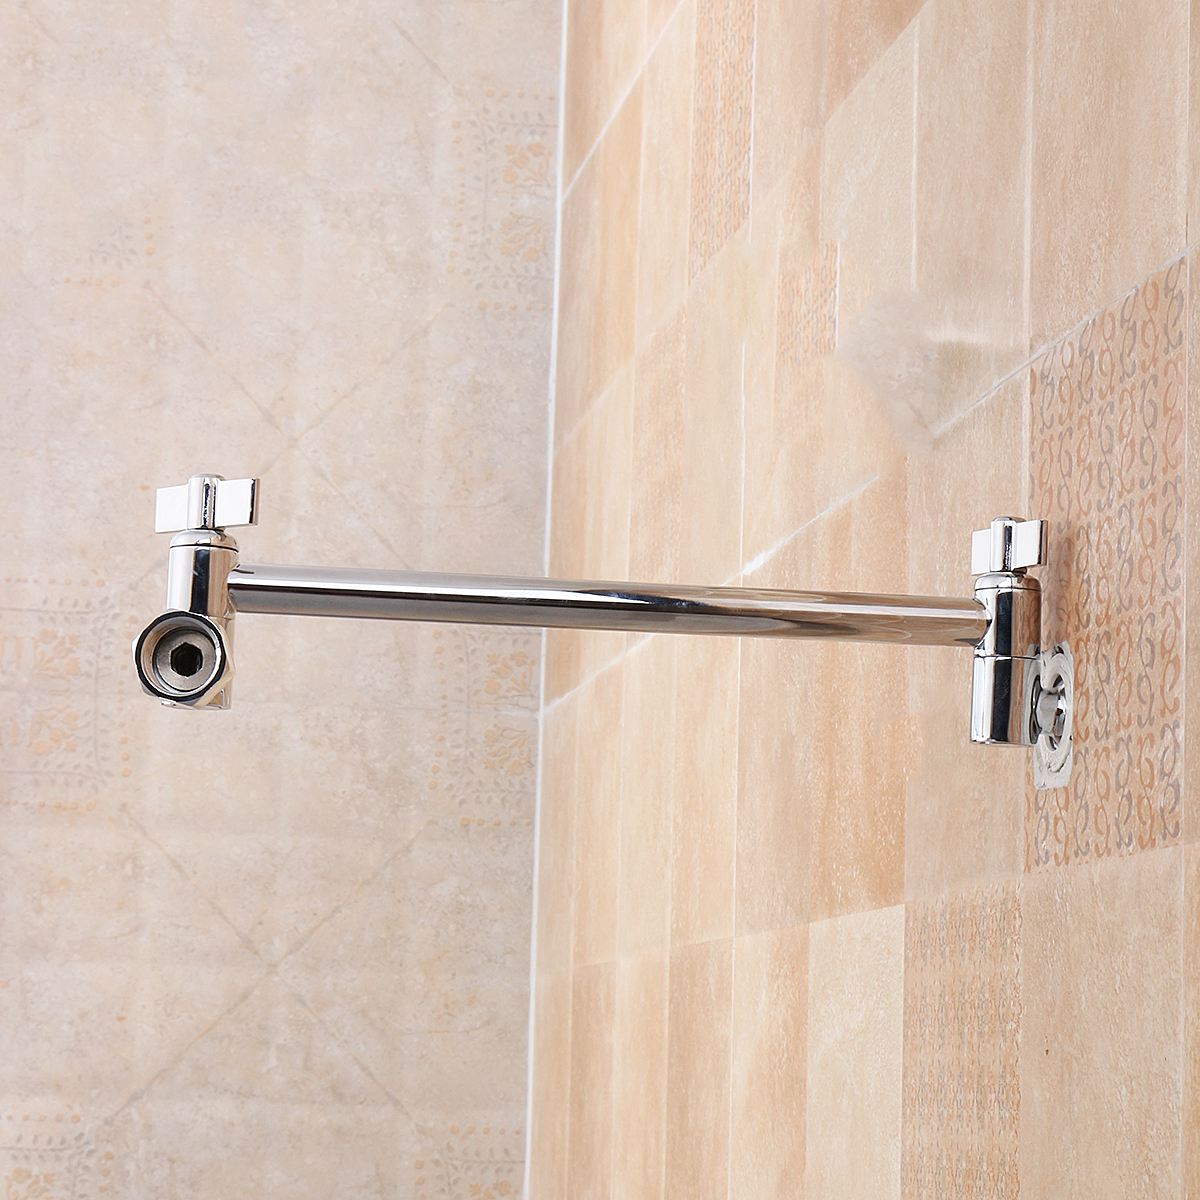 9 Inch Brass Chrome Shower Head Adjustable Height Arm Wall Mount